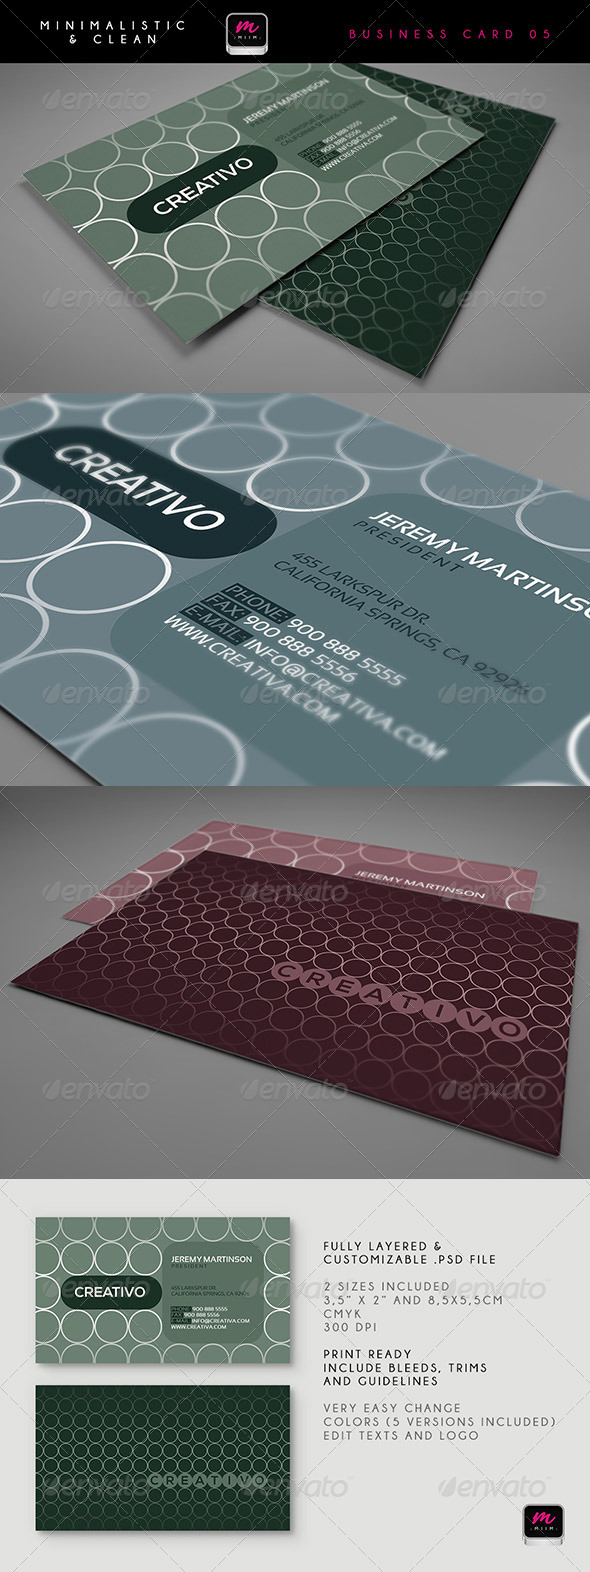 GraphicRiver Clean Business Card Template 01 5901499